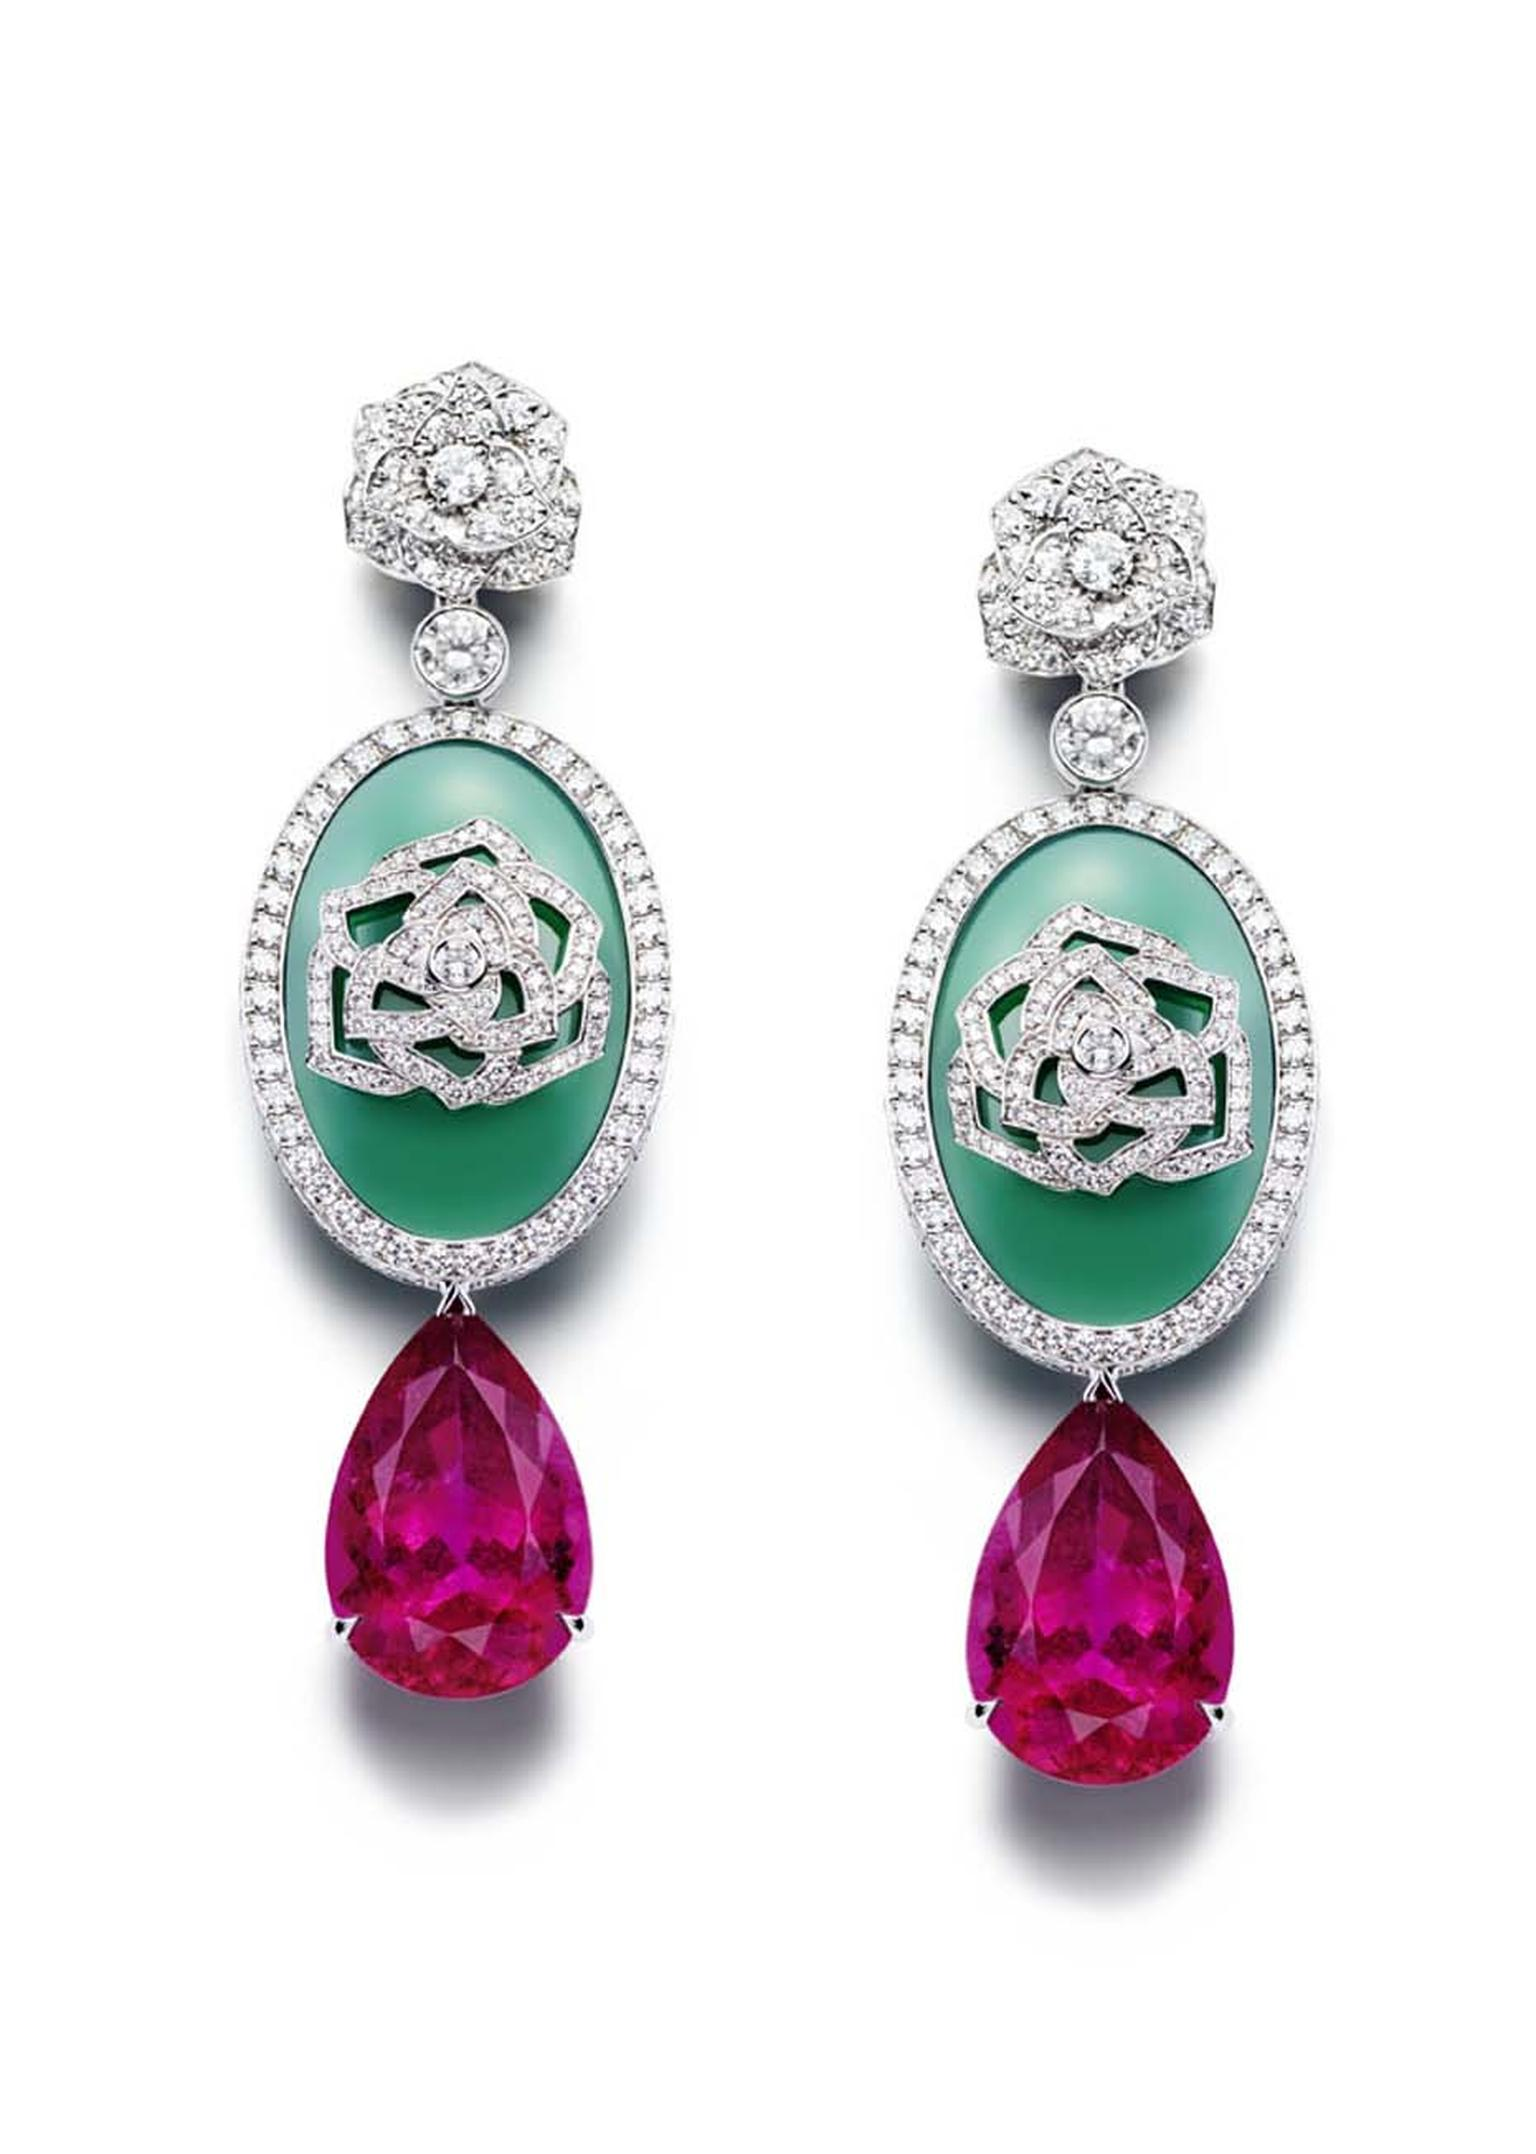 Piaget Rose Passion earrings in white gold, with pear shaped rubellites and chrysoprase surrounded by diamonds